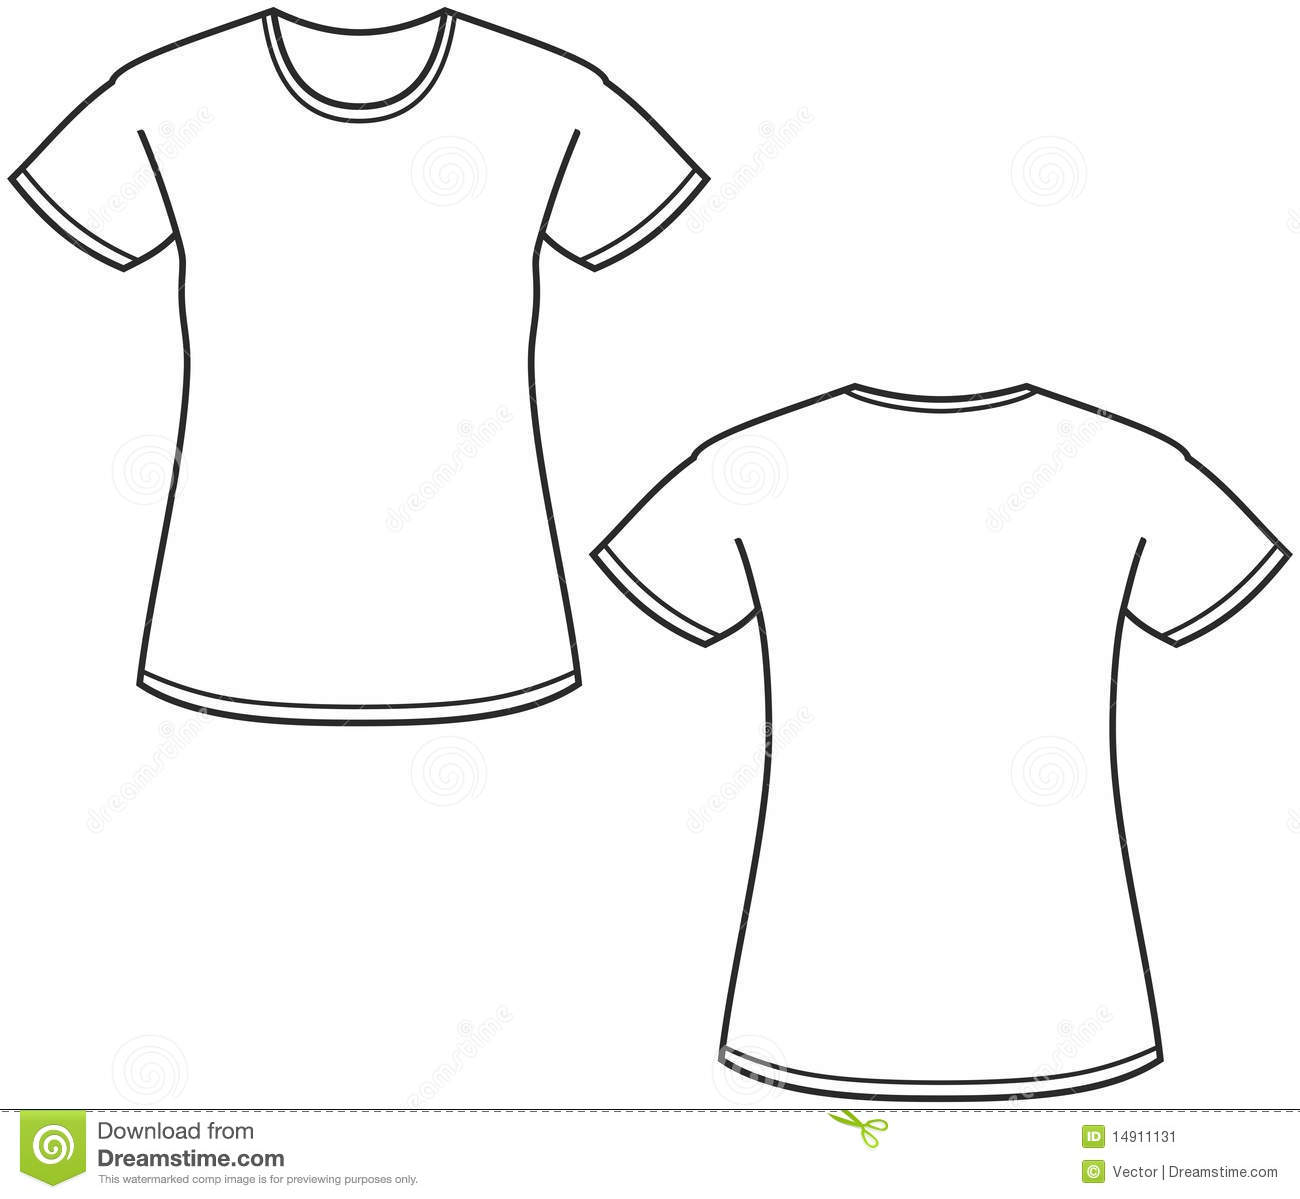 Black t shirt vector free - Women White T Shirt Template Image Information